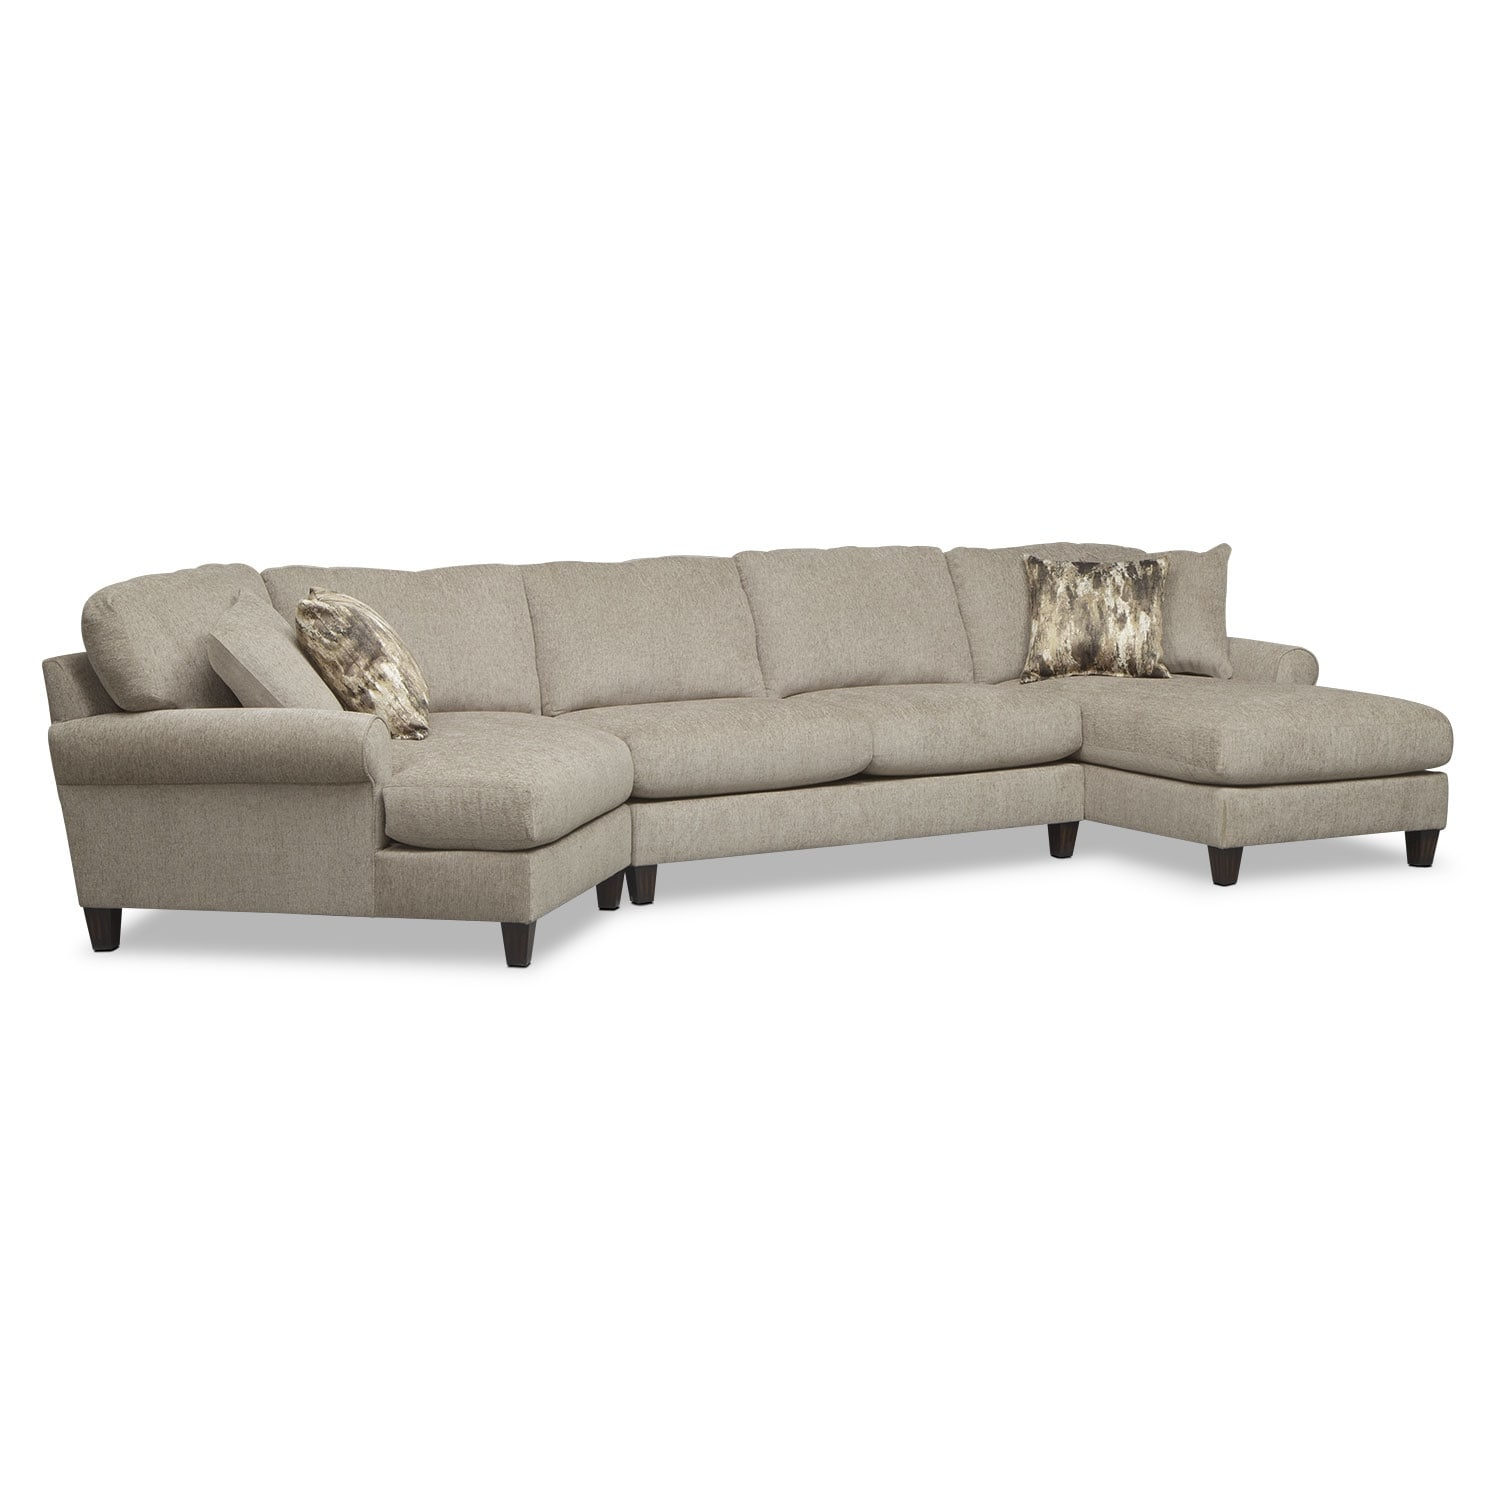 Karma 3 Piece Sectional With Left Facing Cuddler And Right